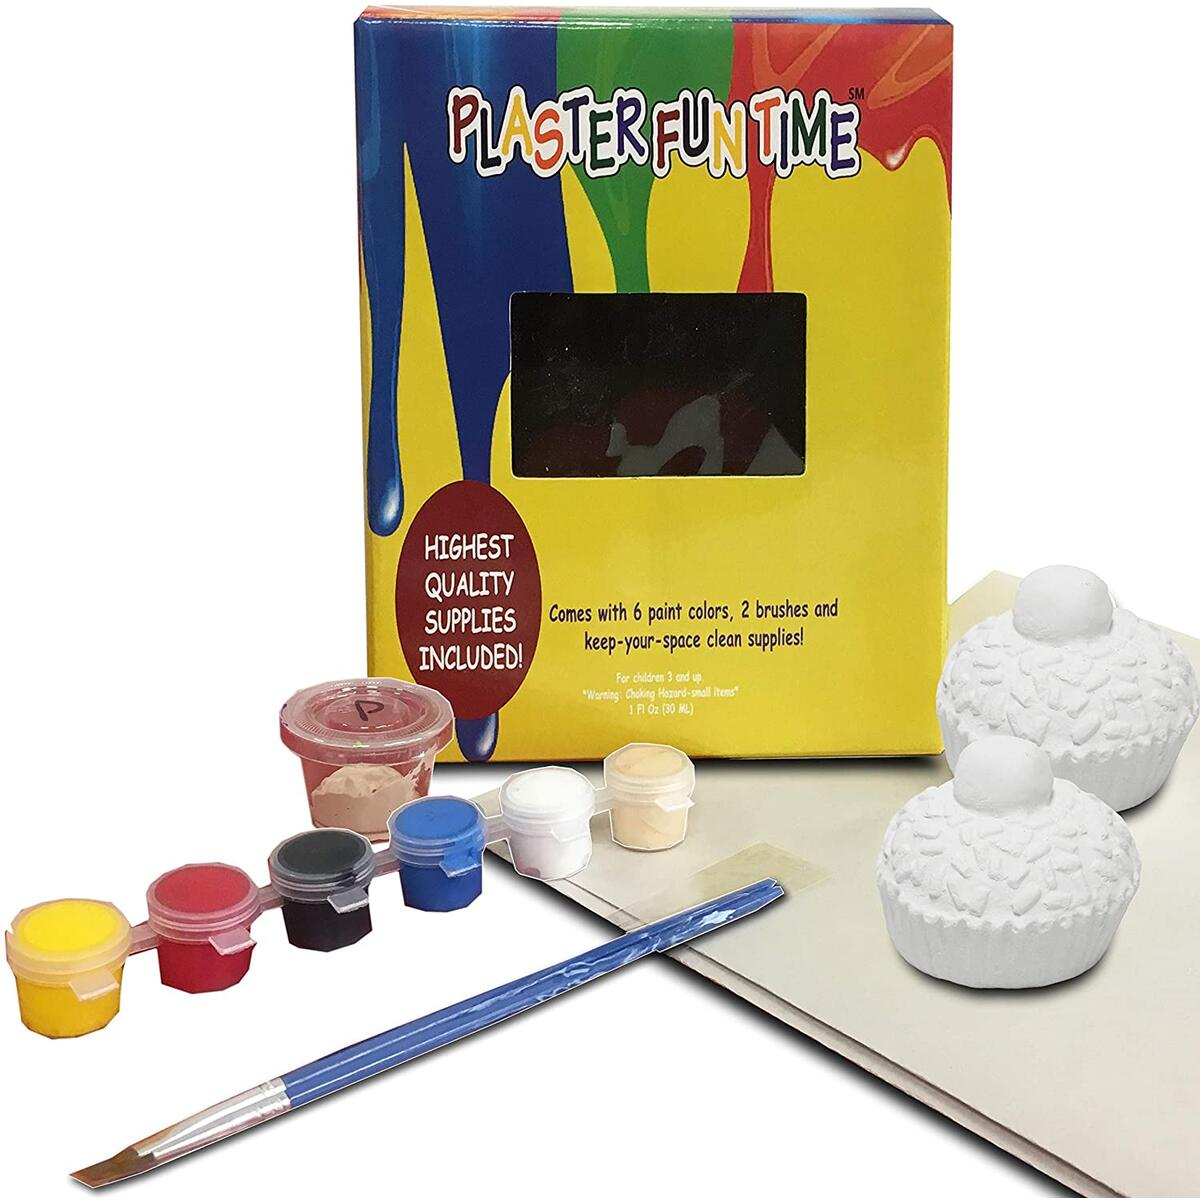 70% OFF SUPER SALE, ENDS SOON! - Paint Your Own Cupcakes Painting Kit for Kids (3+) - Ceramic Arts & Crafts for Kids - DIY All Inclusive & Ready – Includes 2 Cupcakes, 6 Paint Colors, 2 Brushes, Paper for Quick Clean Up